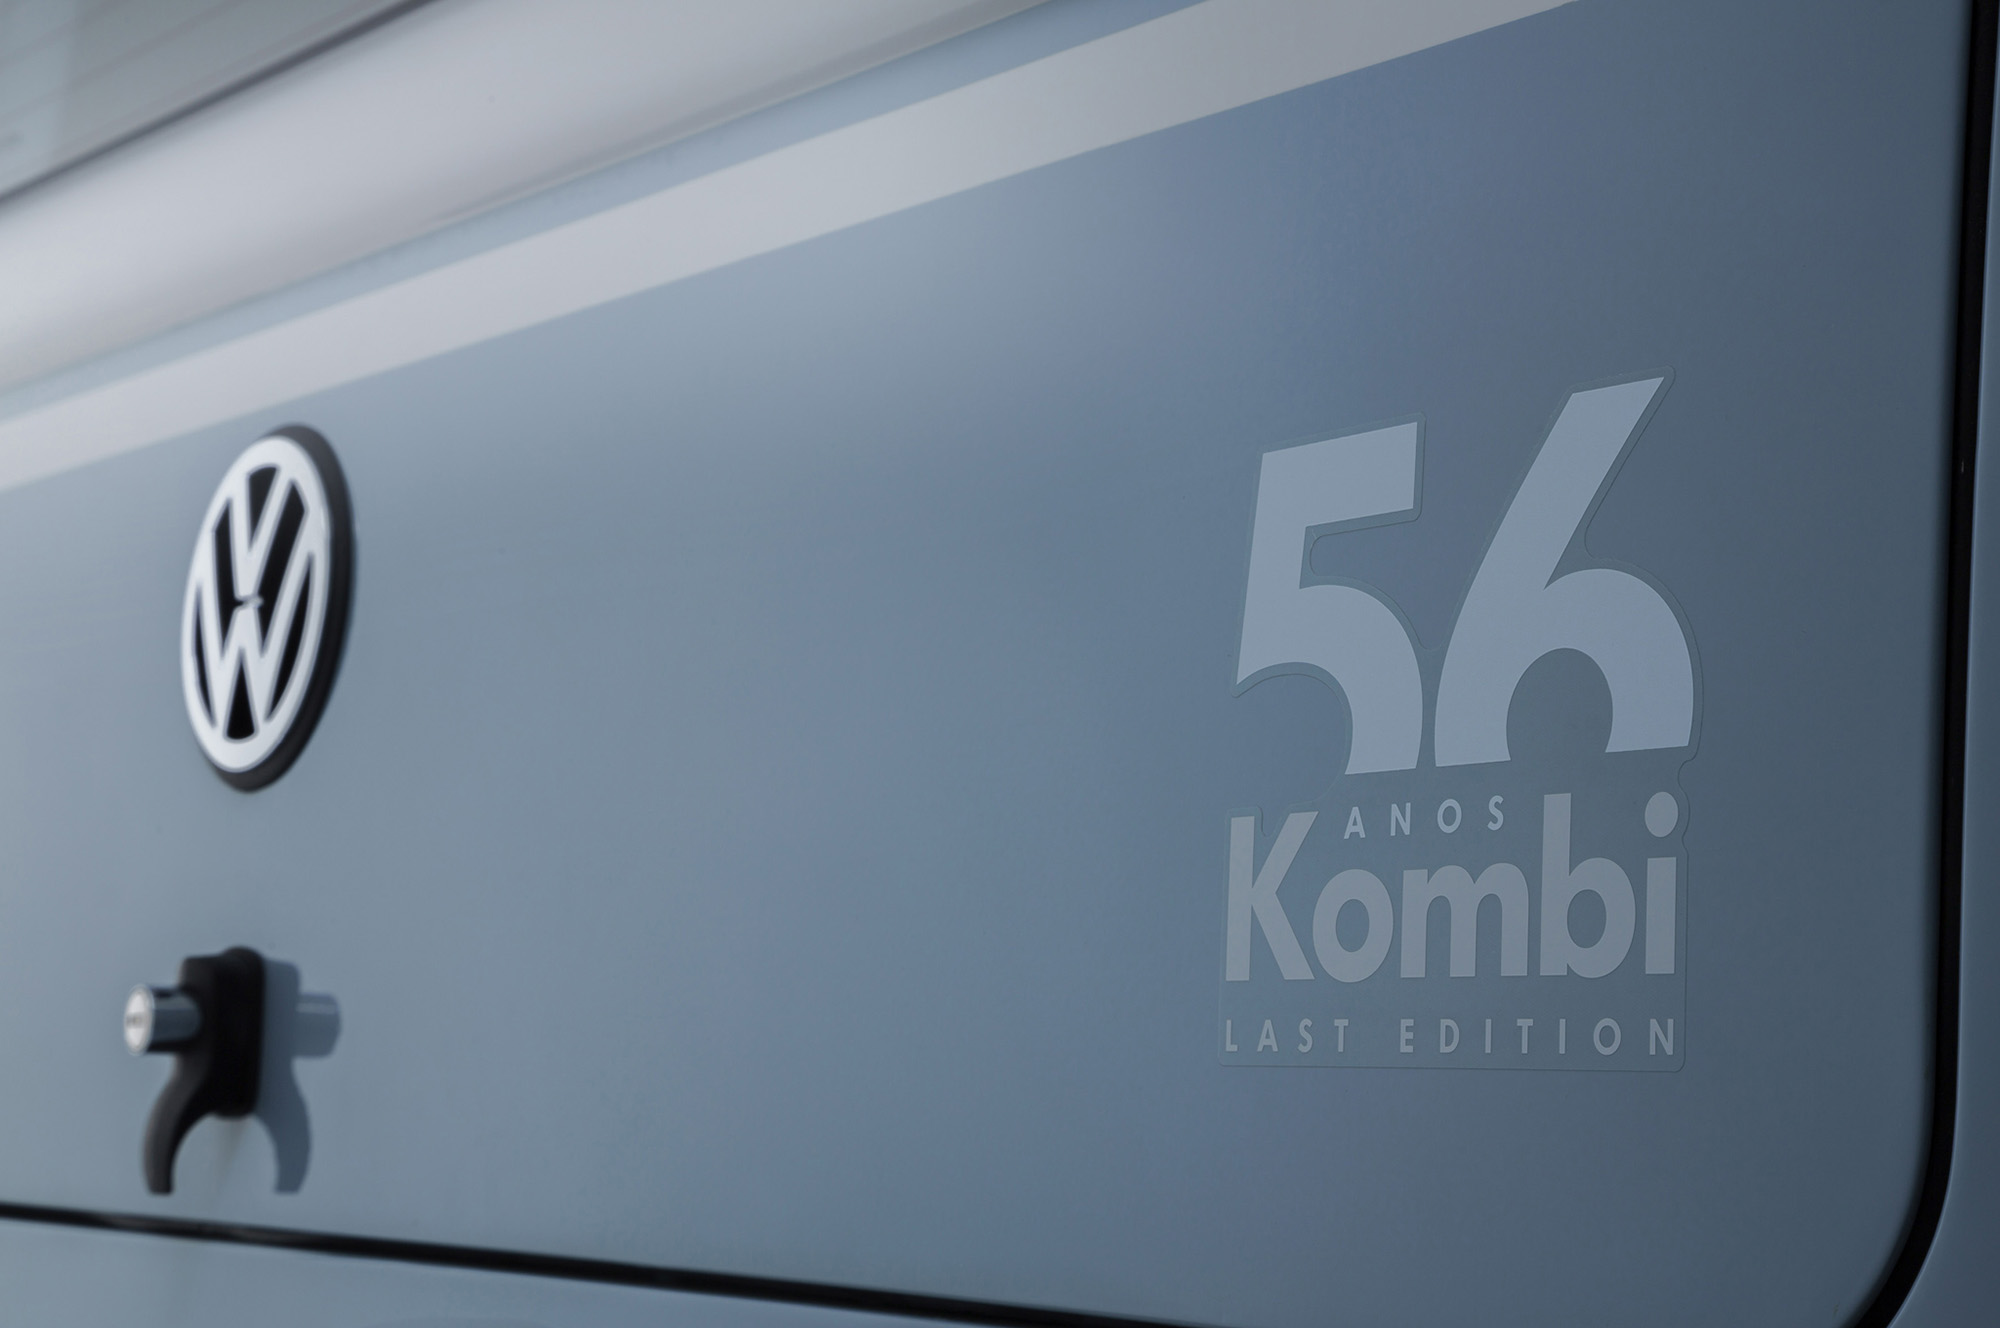 2013 Volkswagen Kombi Last Edition decal 600x300